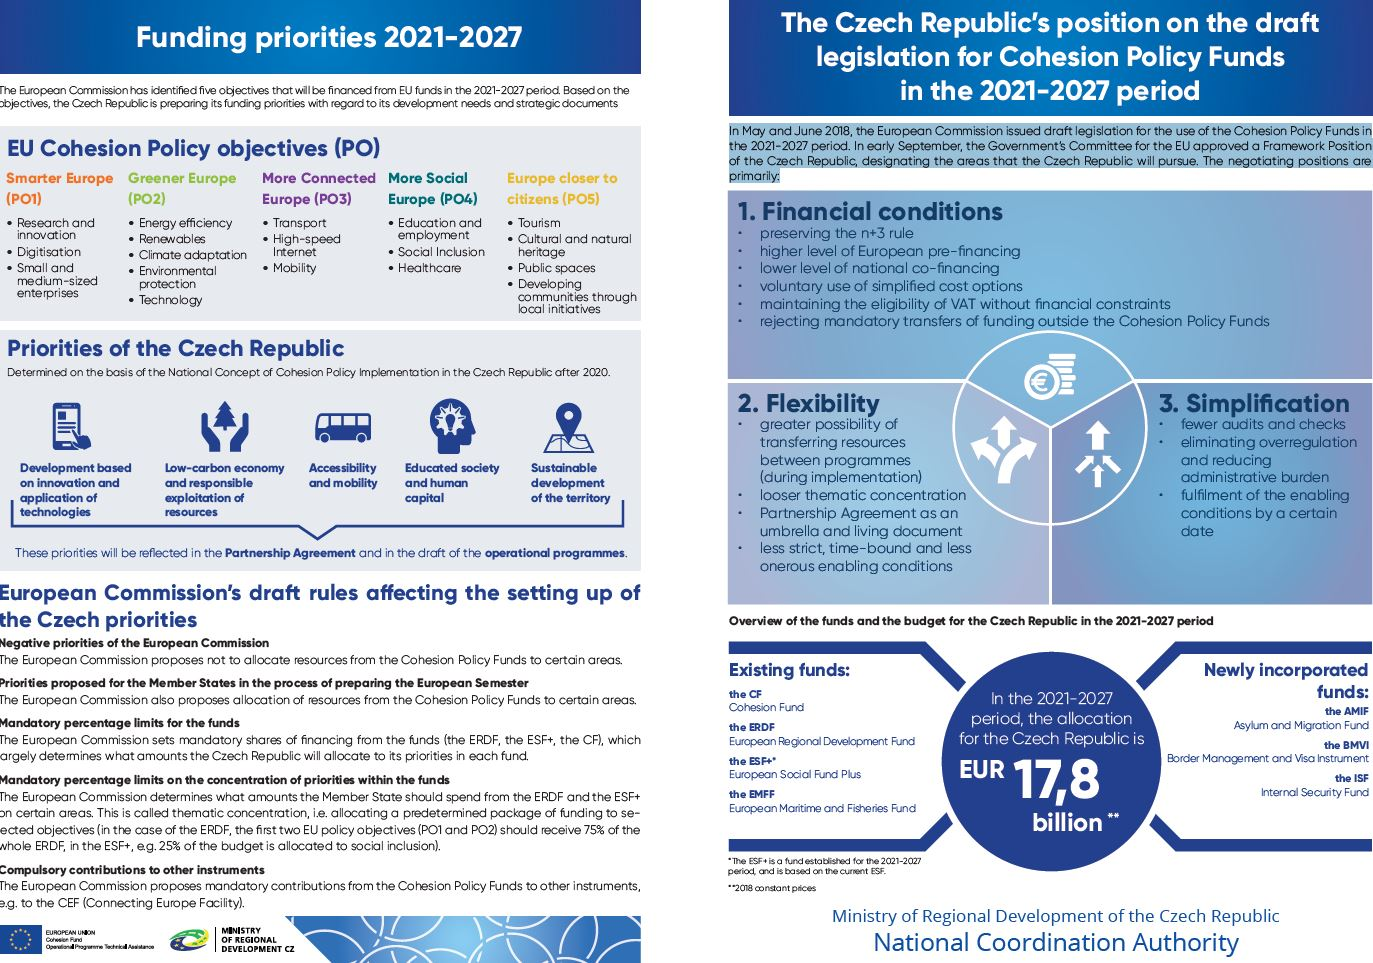 The Czech Republic's position on the draft legislation for Cohesion Policy Funds in the 2021-2027 period